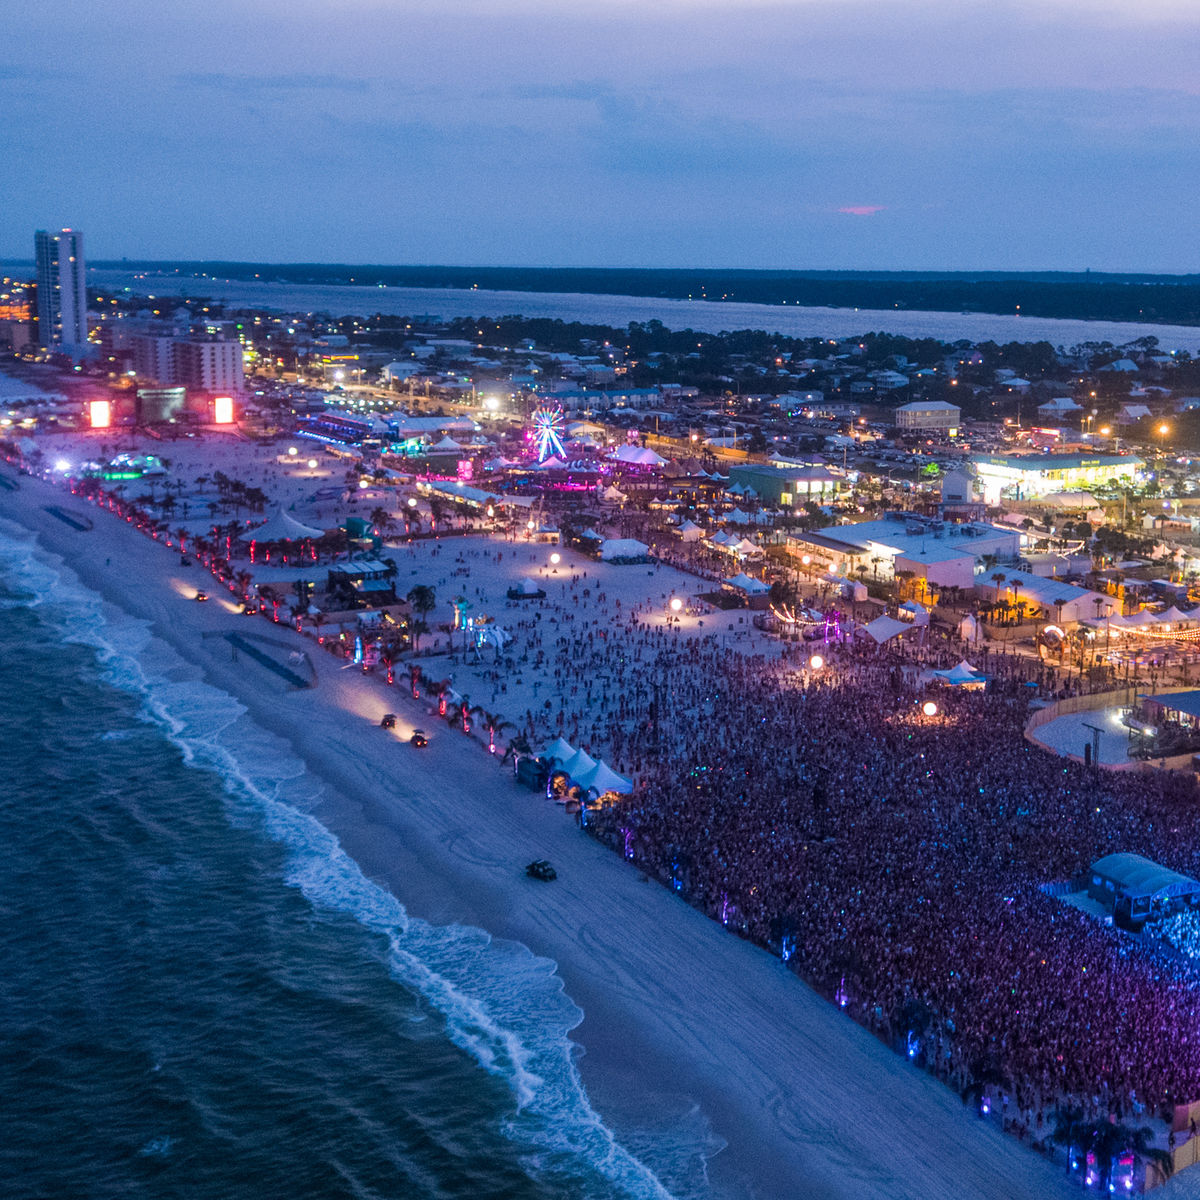 Aerial image of Hangout Music Festival crowd and stage on the beach